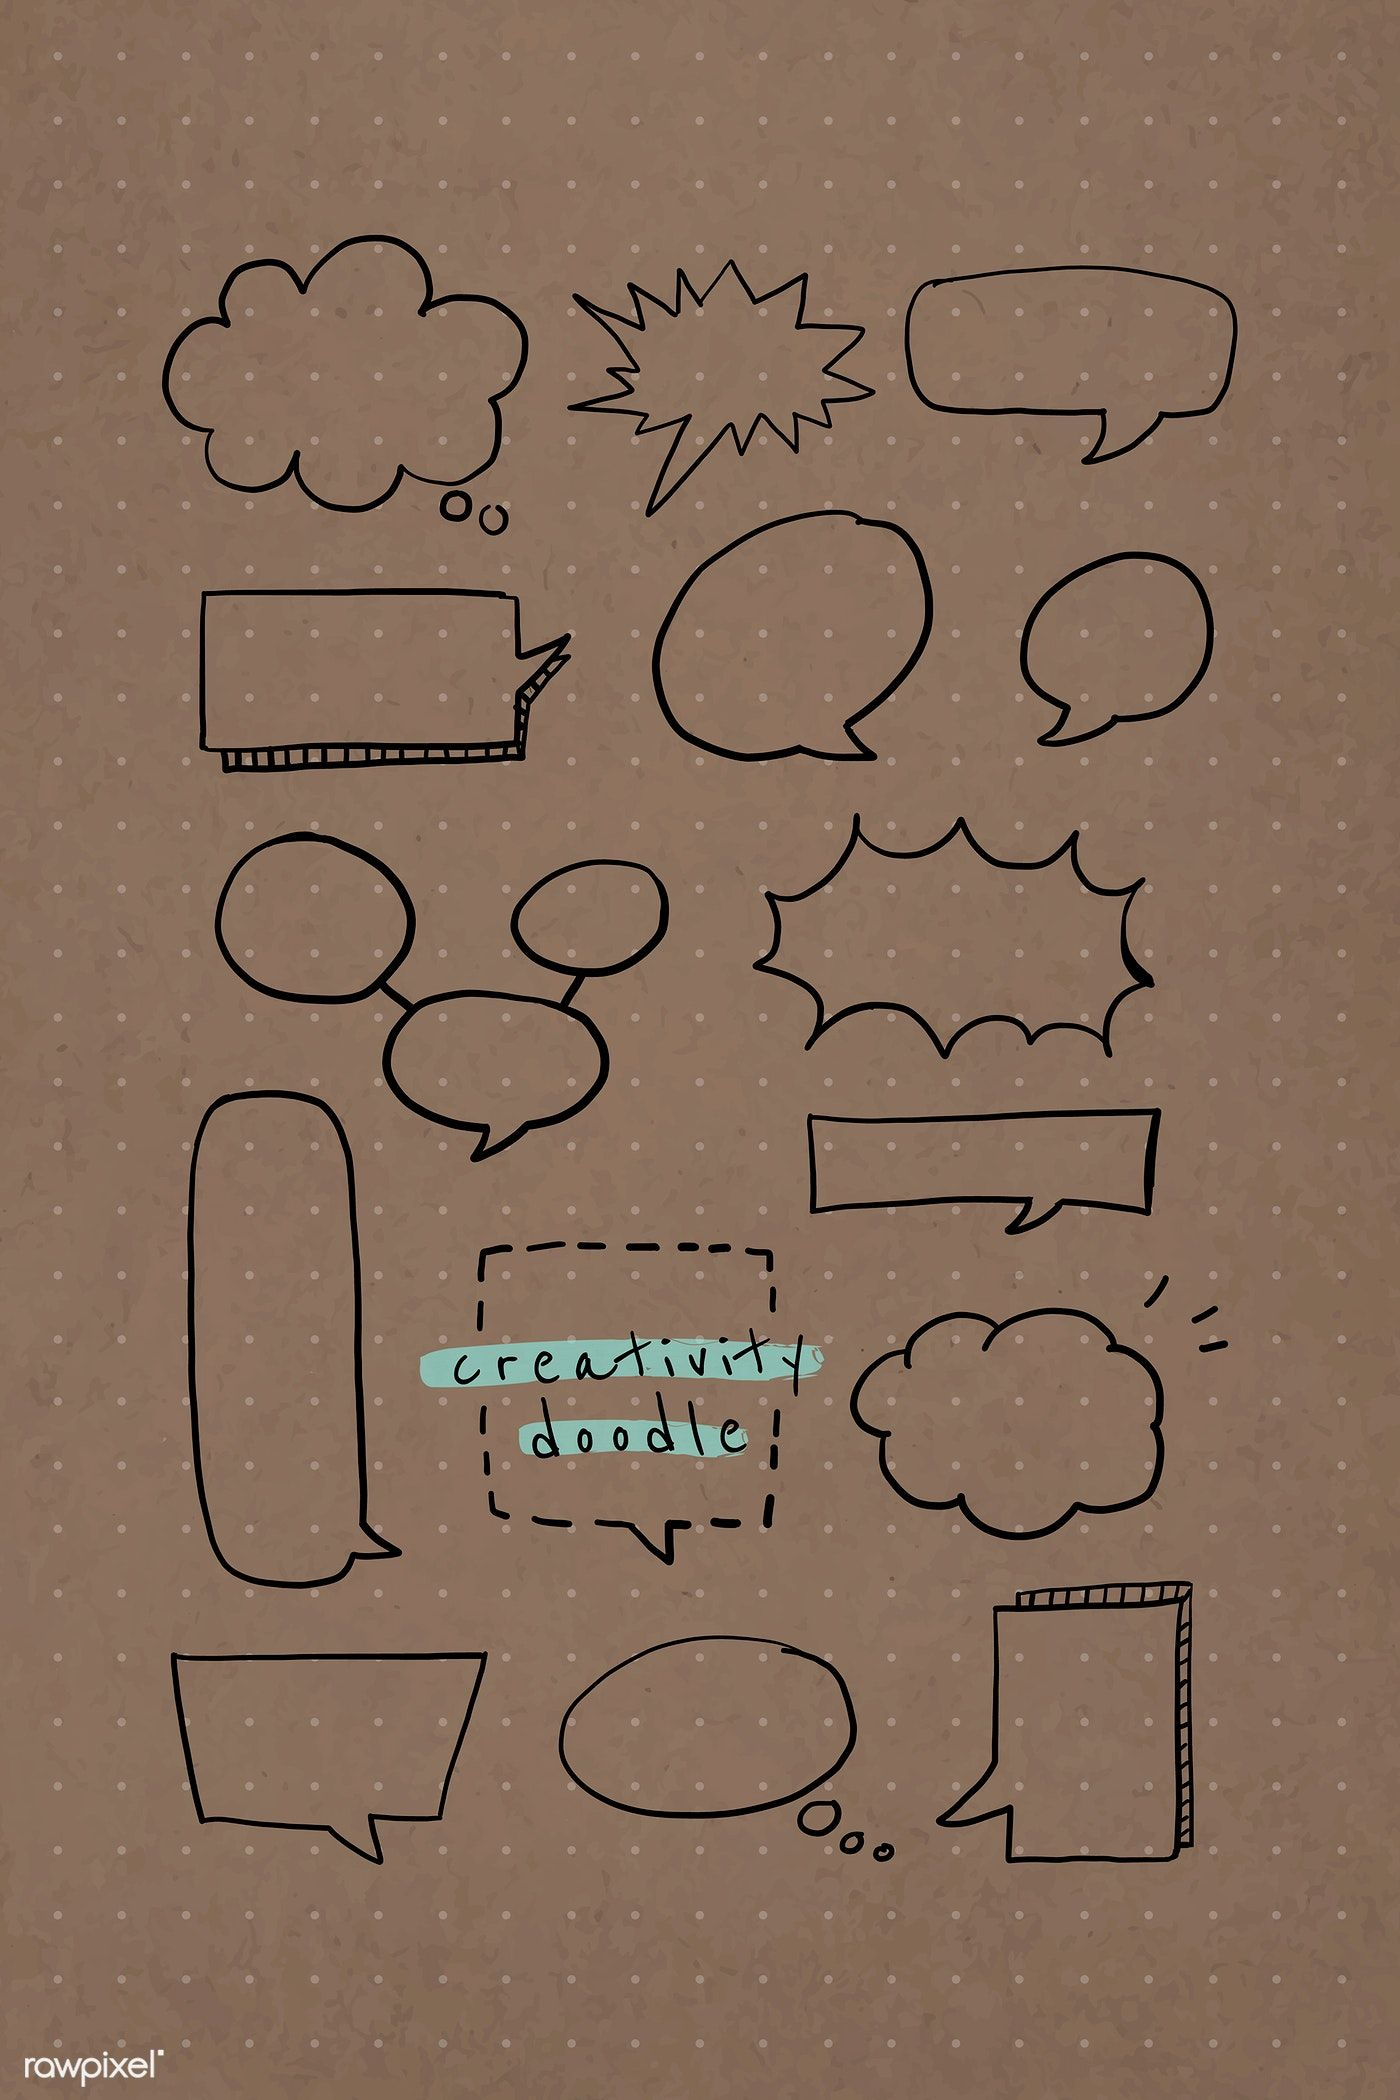 Download premium vector of Speech bubble creativity doodle